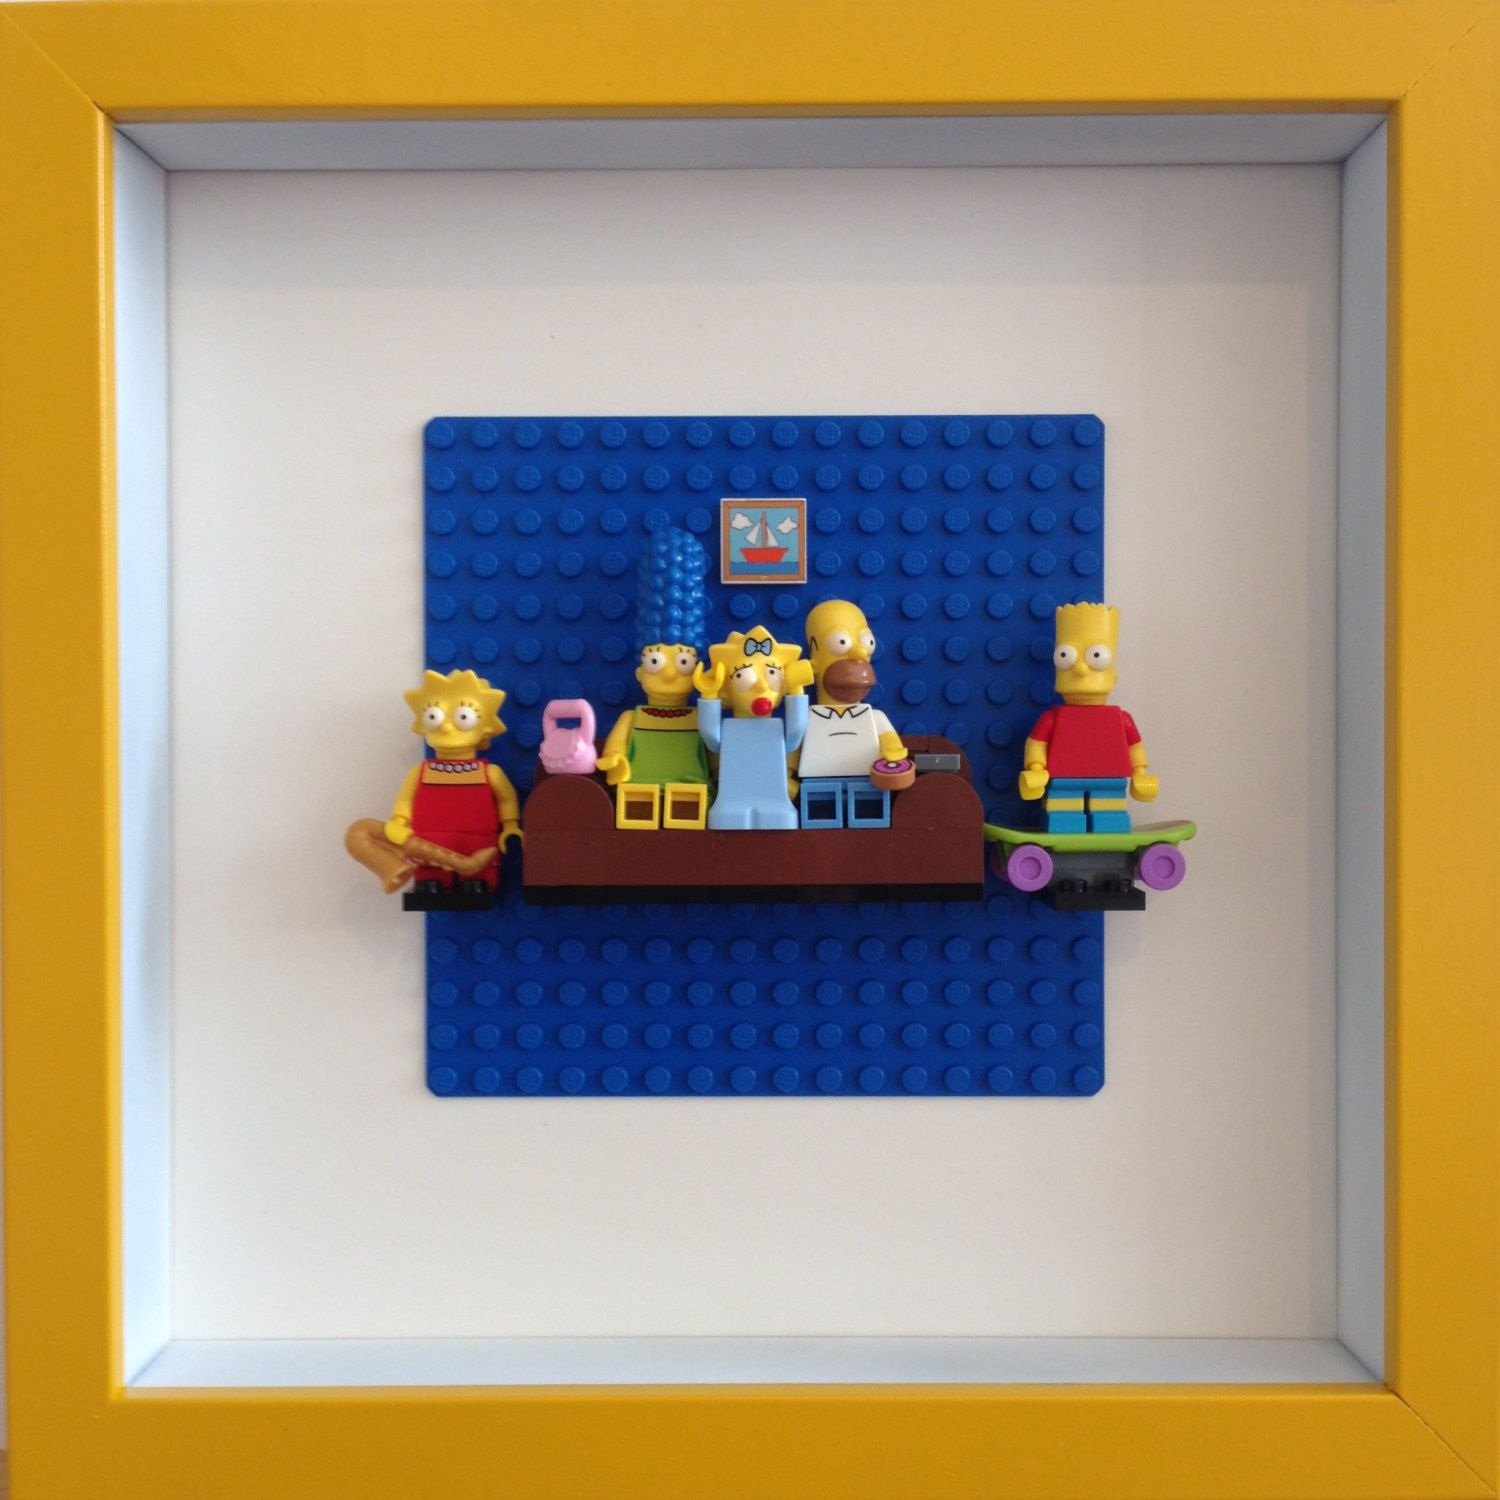 lego simpsons framed wall art minifigures easy to recreate lego fun pinterest selber. Black Bedroom Furniture Sets. Home Design Ideas